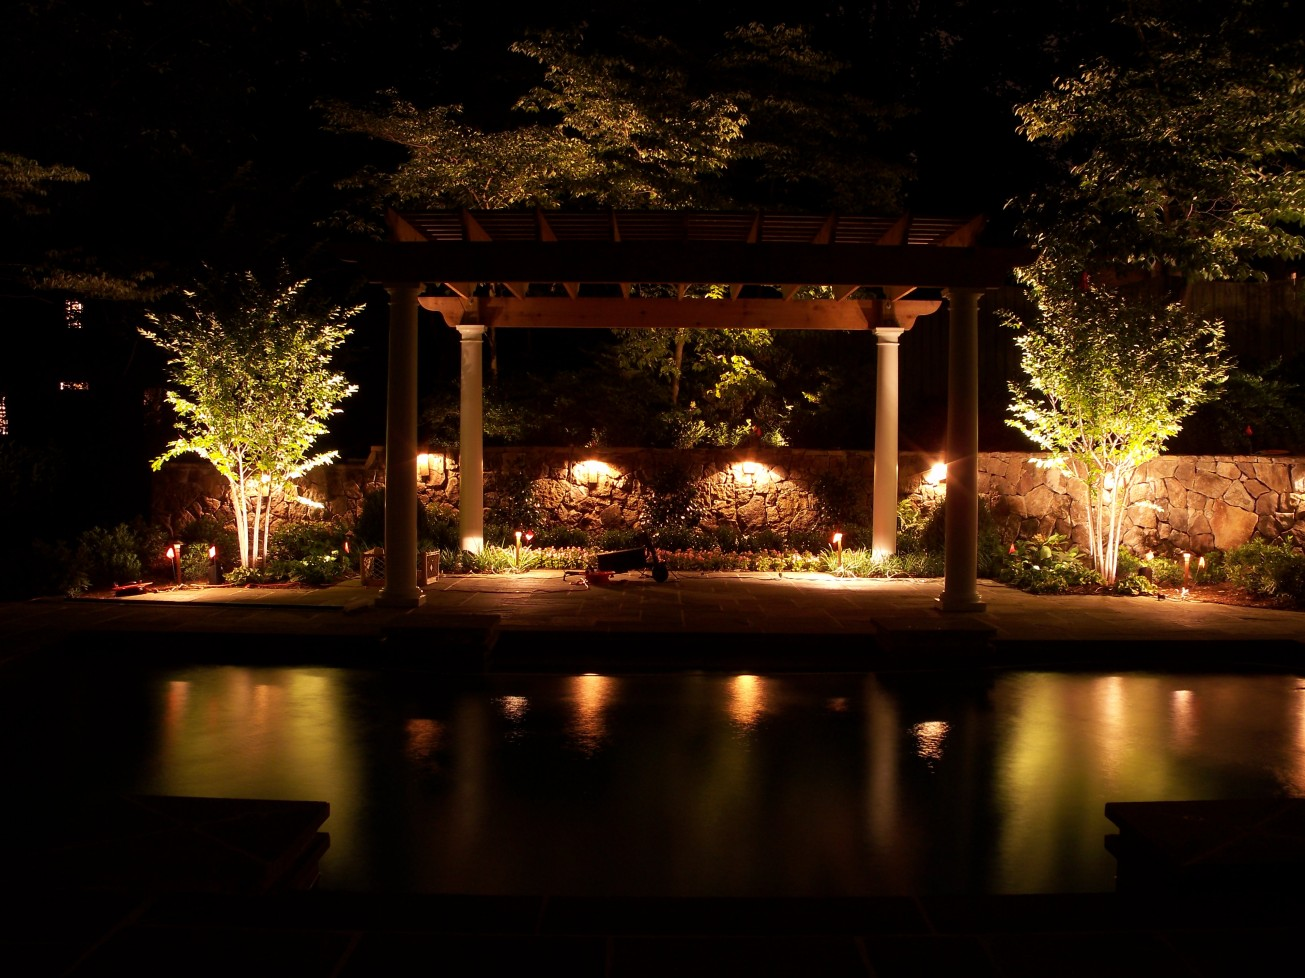 classic-outdoor-pool-area-ideas-with-patio-lighting-ideas-with-led-lamps-decoration